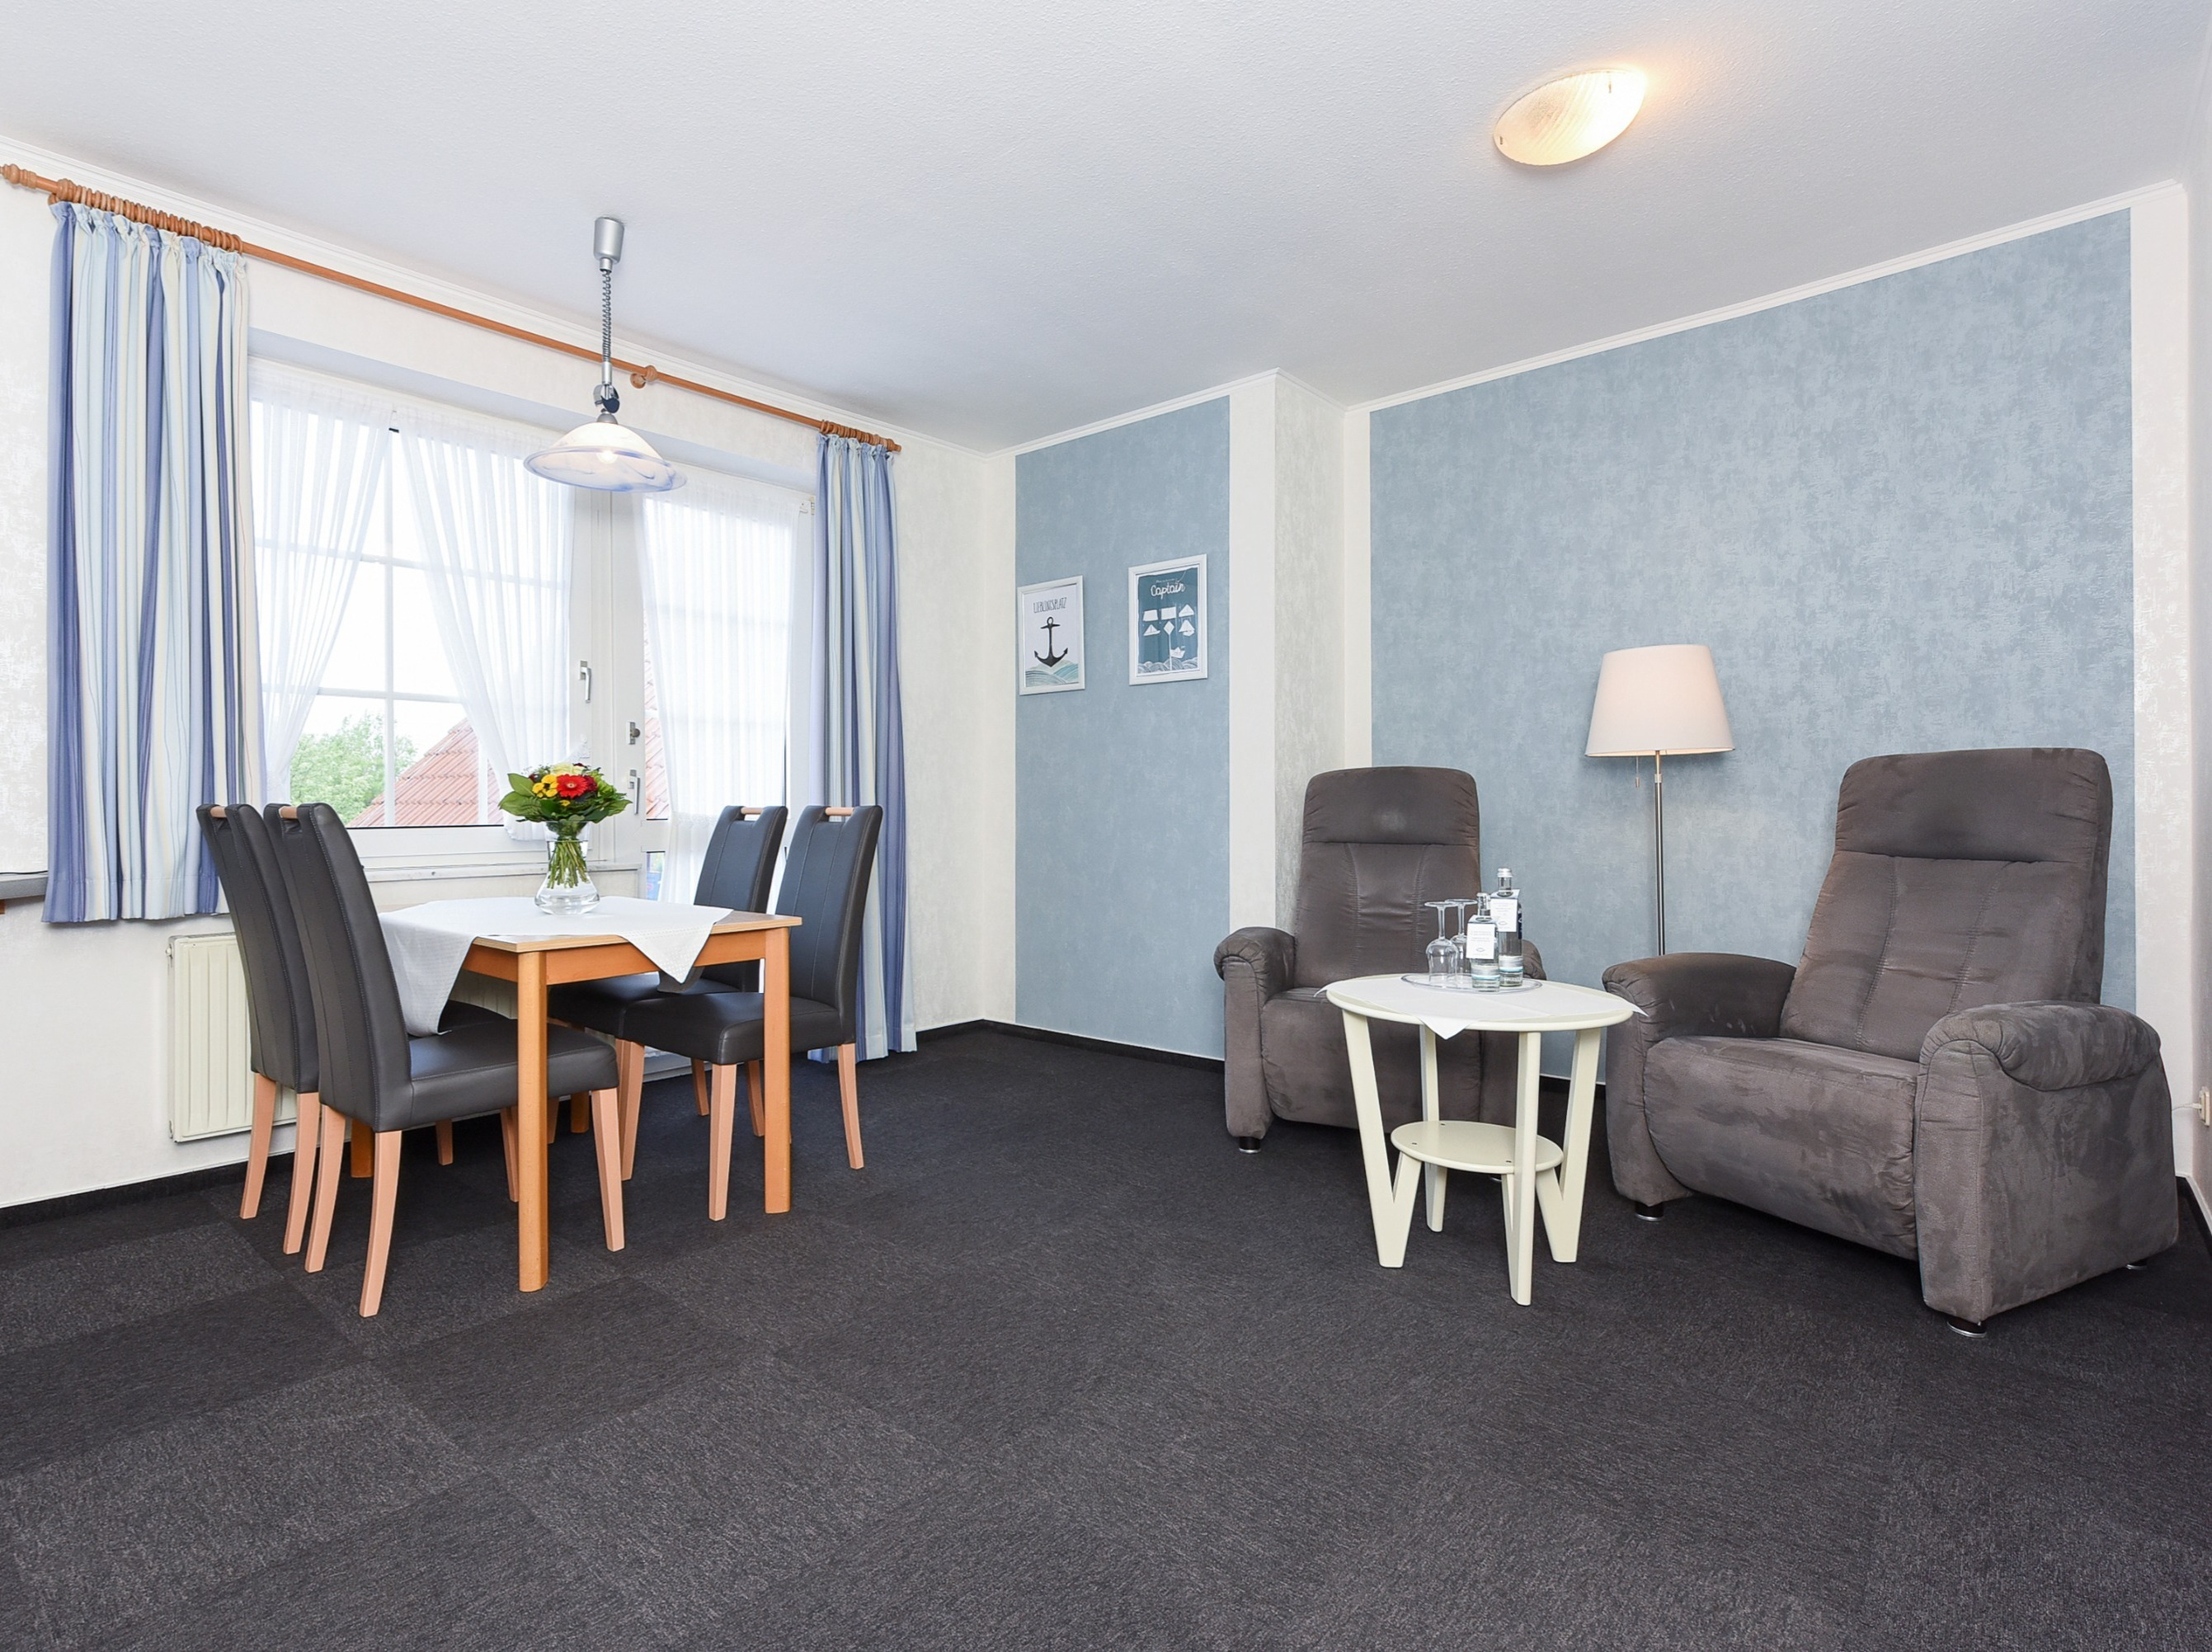 Hotel Schiffer Suite-be